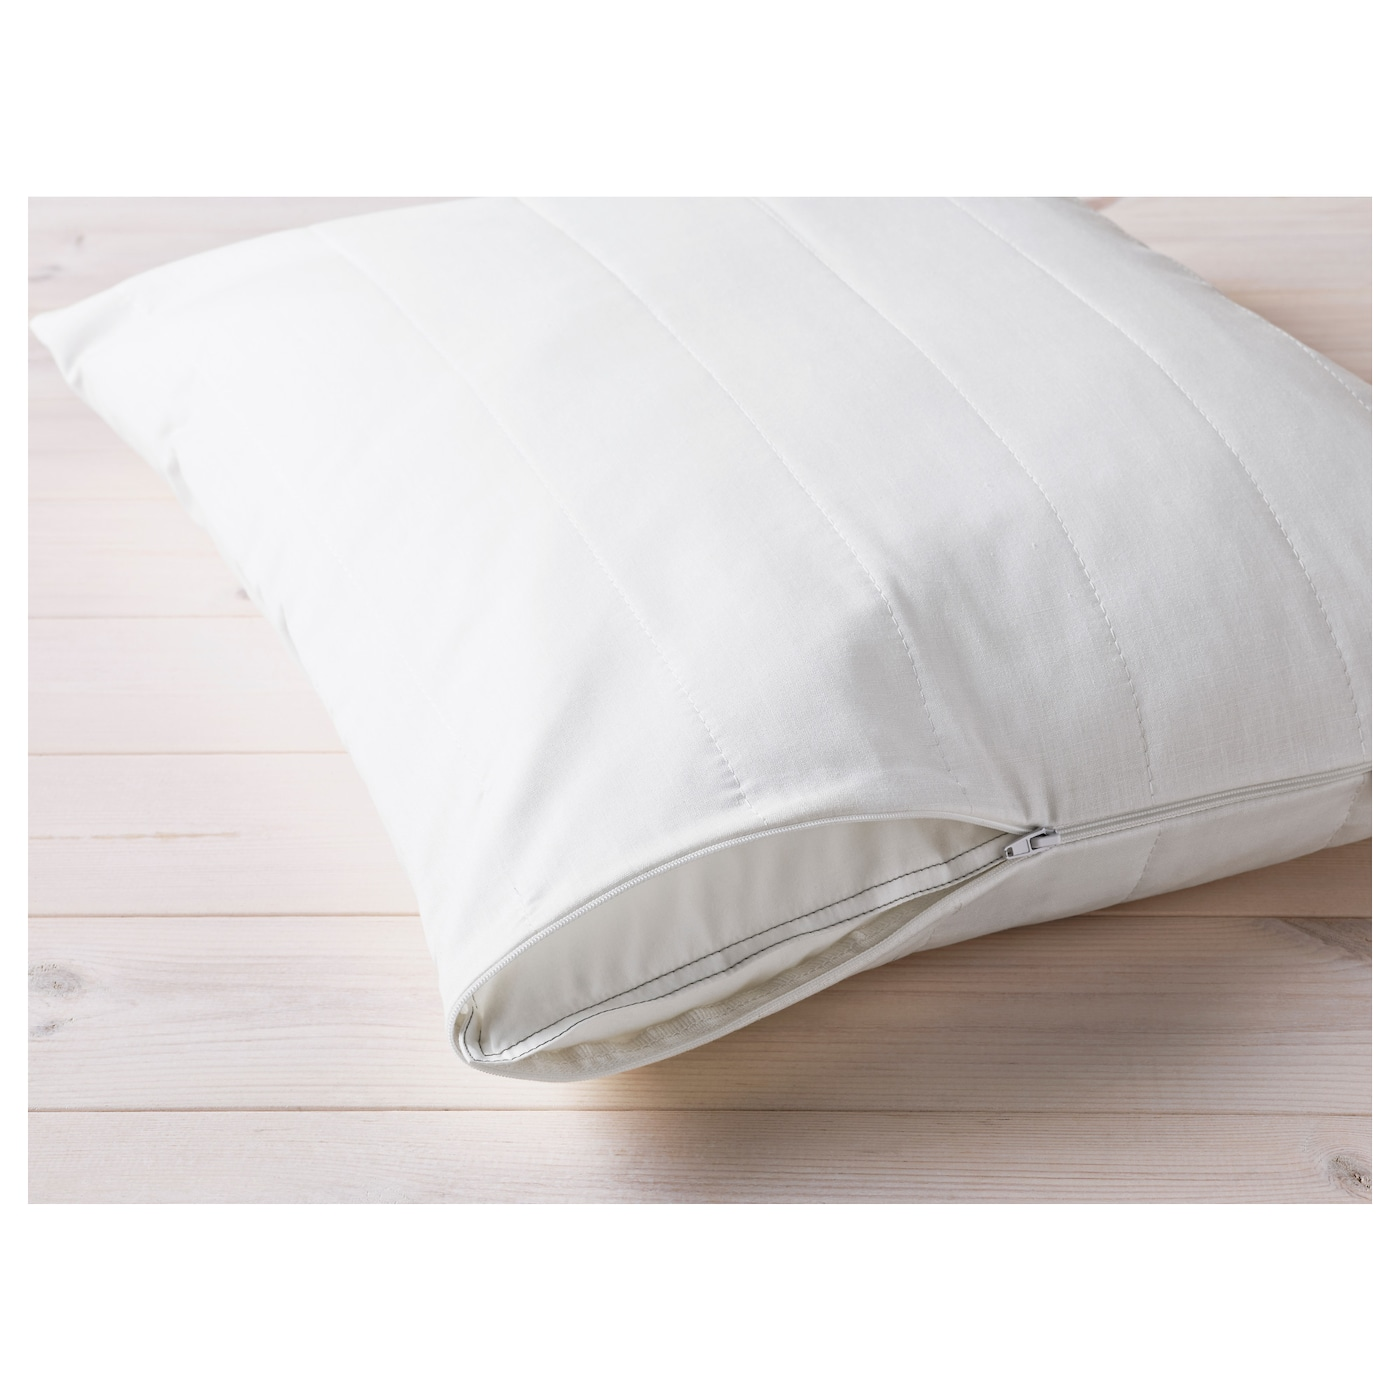 IKEA ÄNGSVIDE pillow protector Protects from stains and dirt and prolongs the life of your pillow.